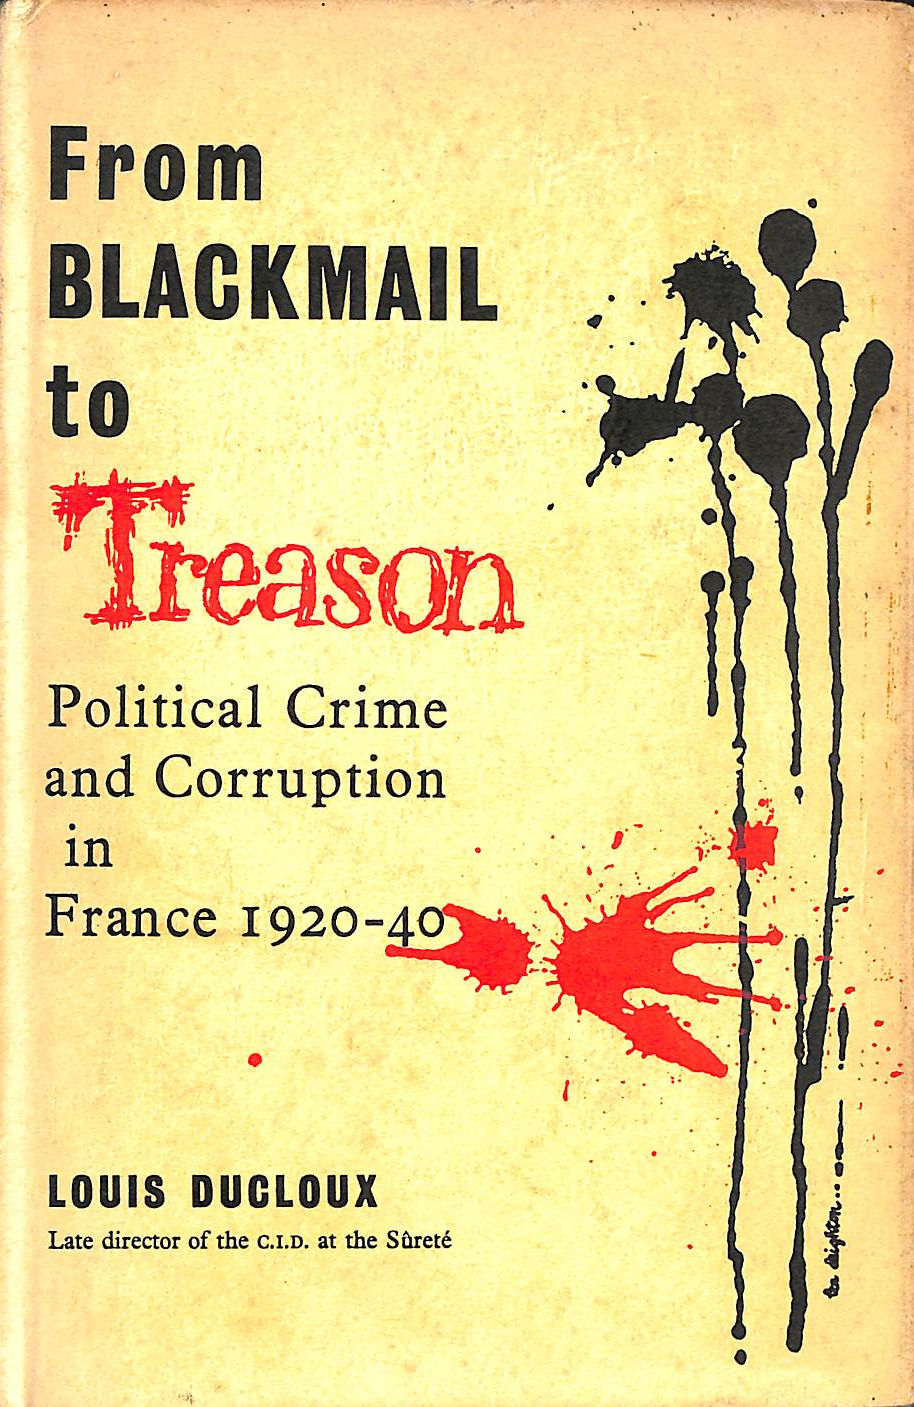 Image for From blackmail to treason: Political crime and corruption in France, 1920-1940